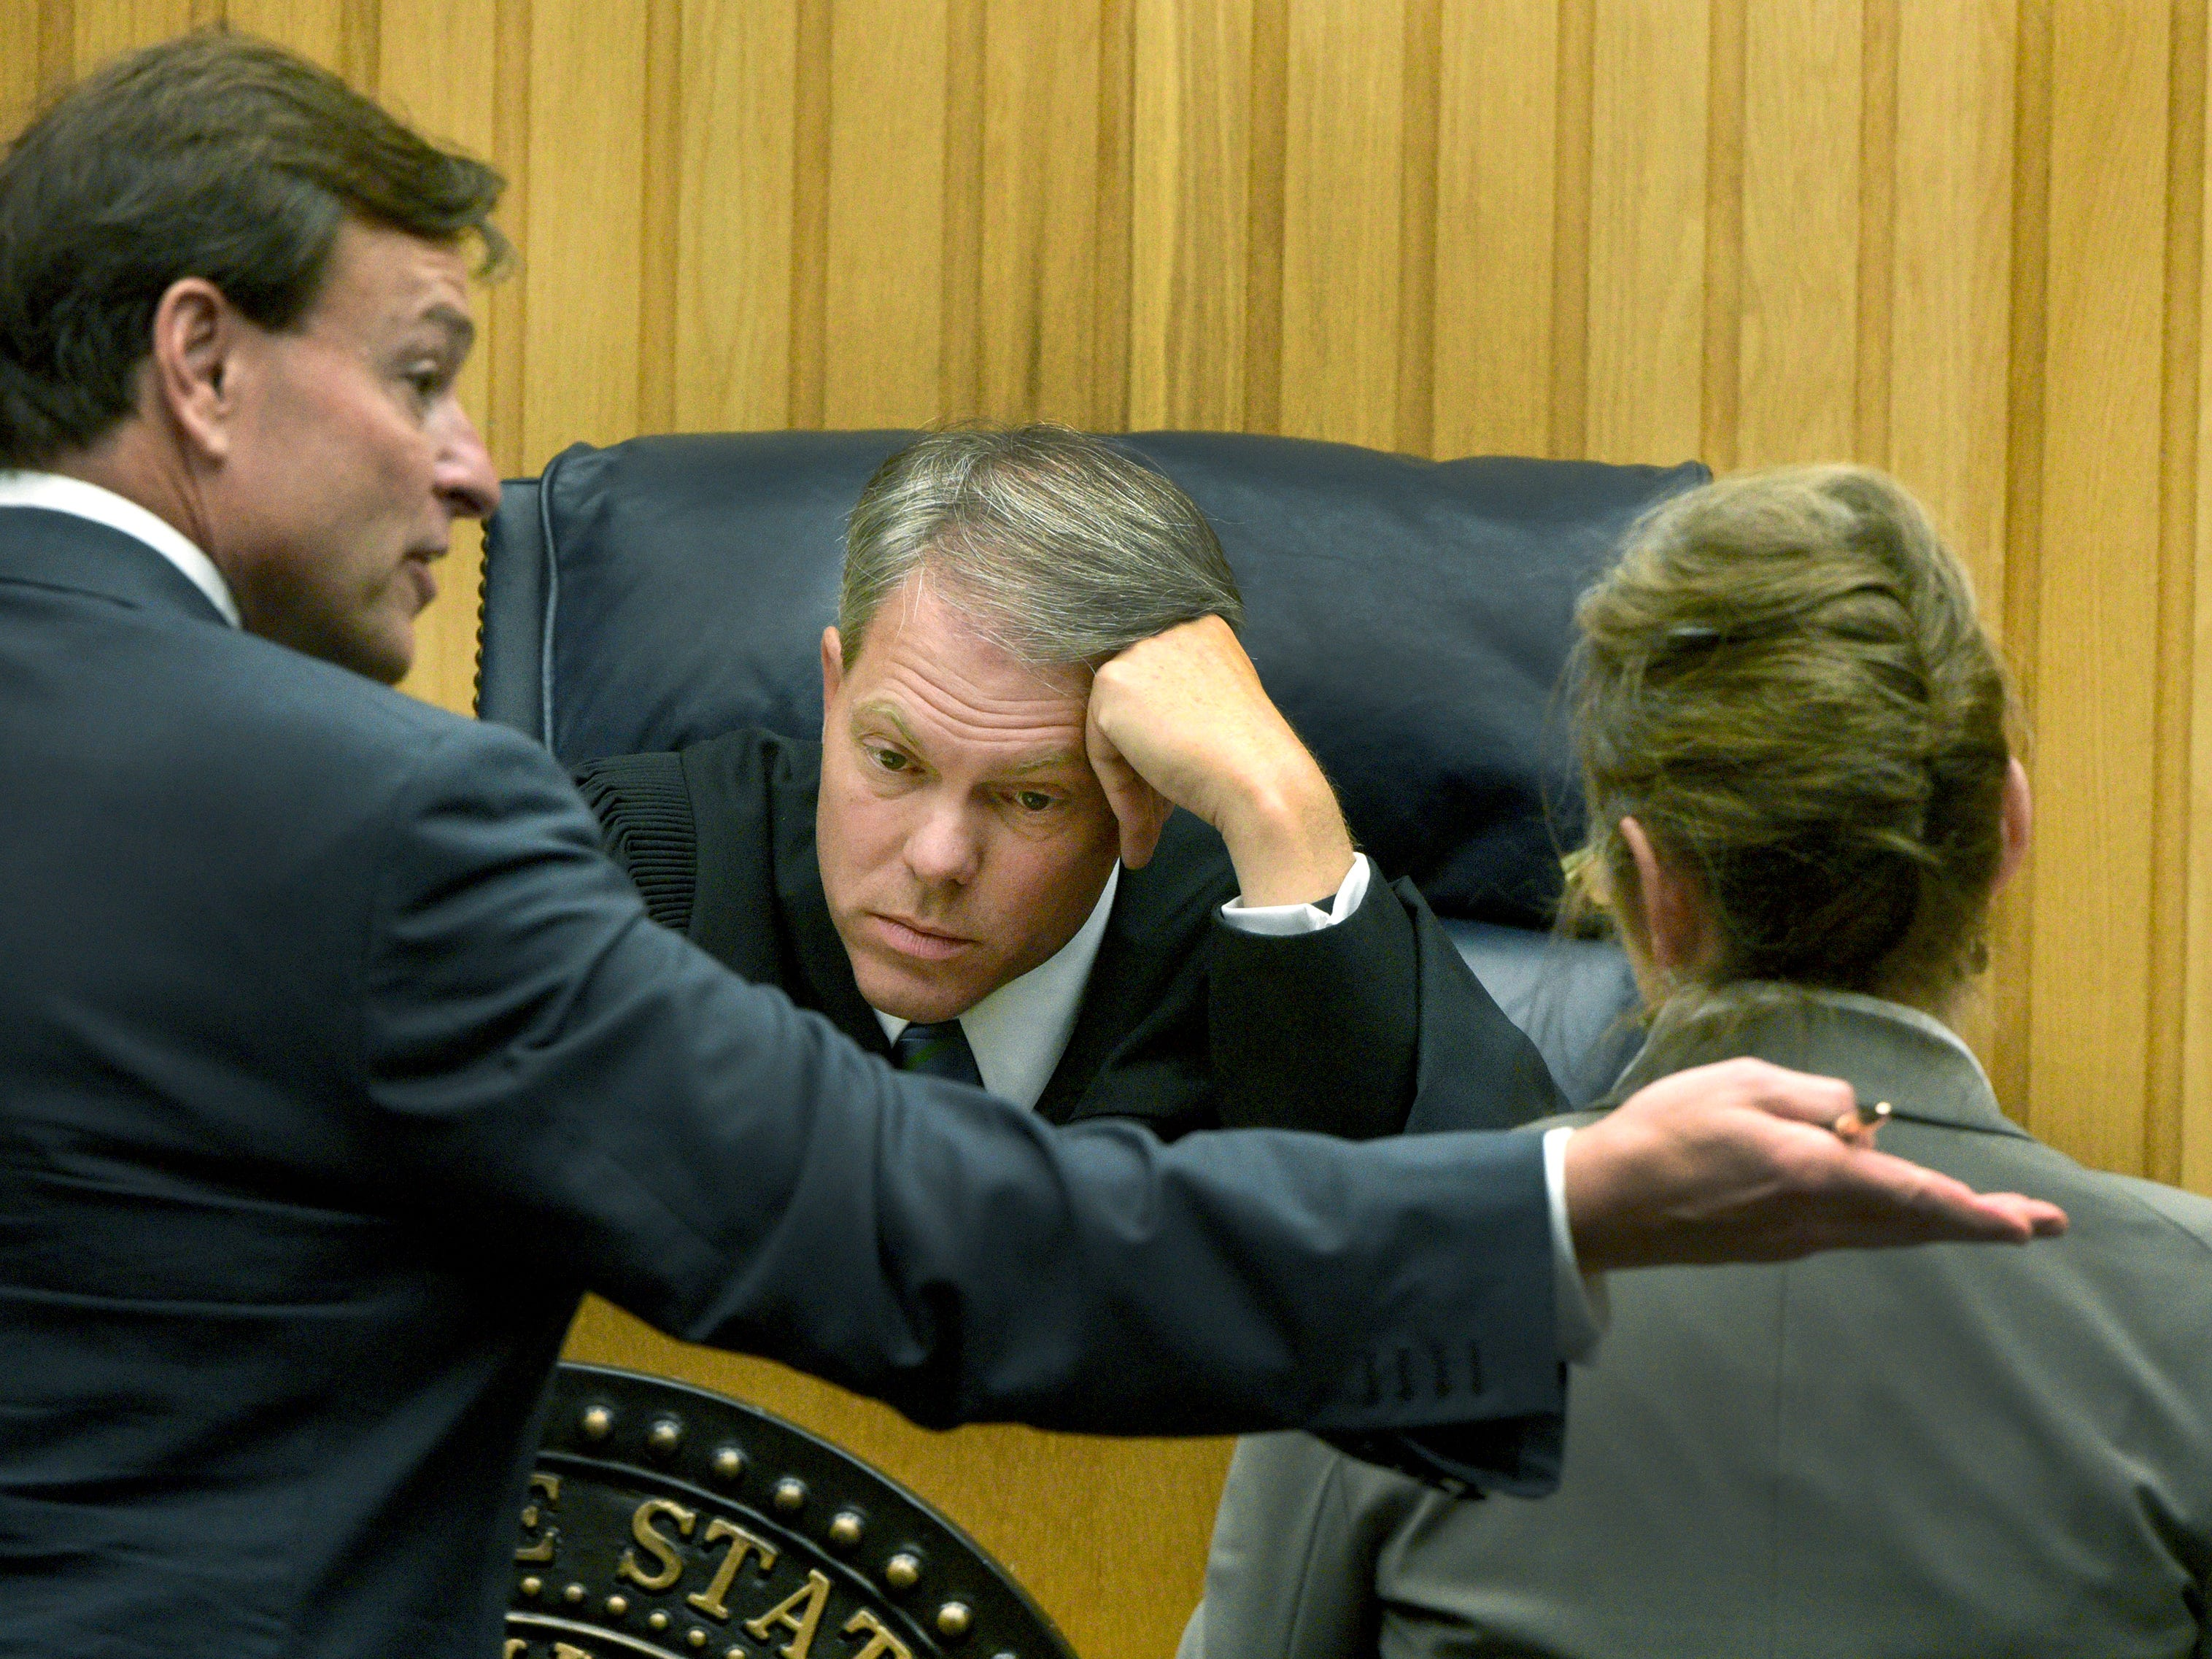 Covering criminal court cases is usually boring and somewhat tedious. Occasionally you can capture a Judge like Steve Sword who seems to tire of the endless arguing over minute legal points from attorneys like Gregory P. Isaacs, left, and ADA Leslie Nassios during a bench conference in the murder trial of Norman Eugene Clark Friday, Aug. 14, 2015.